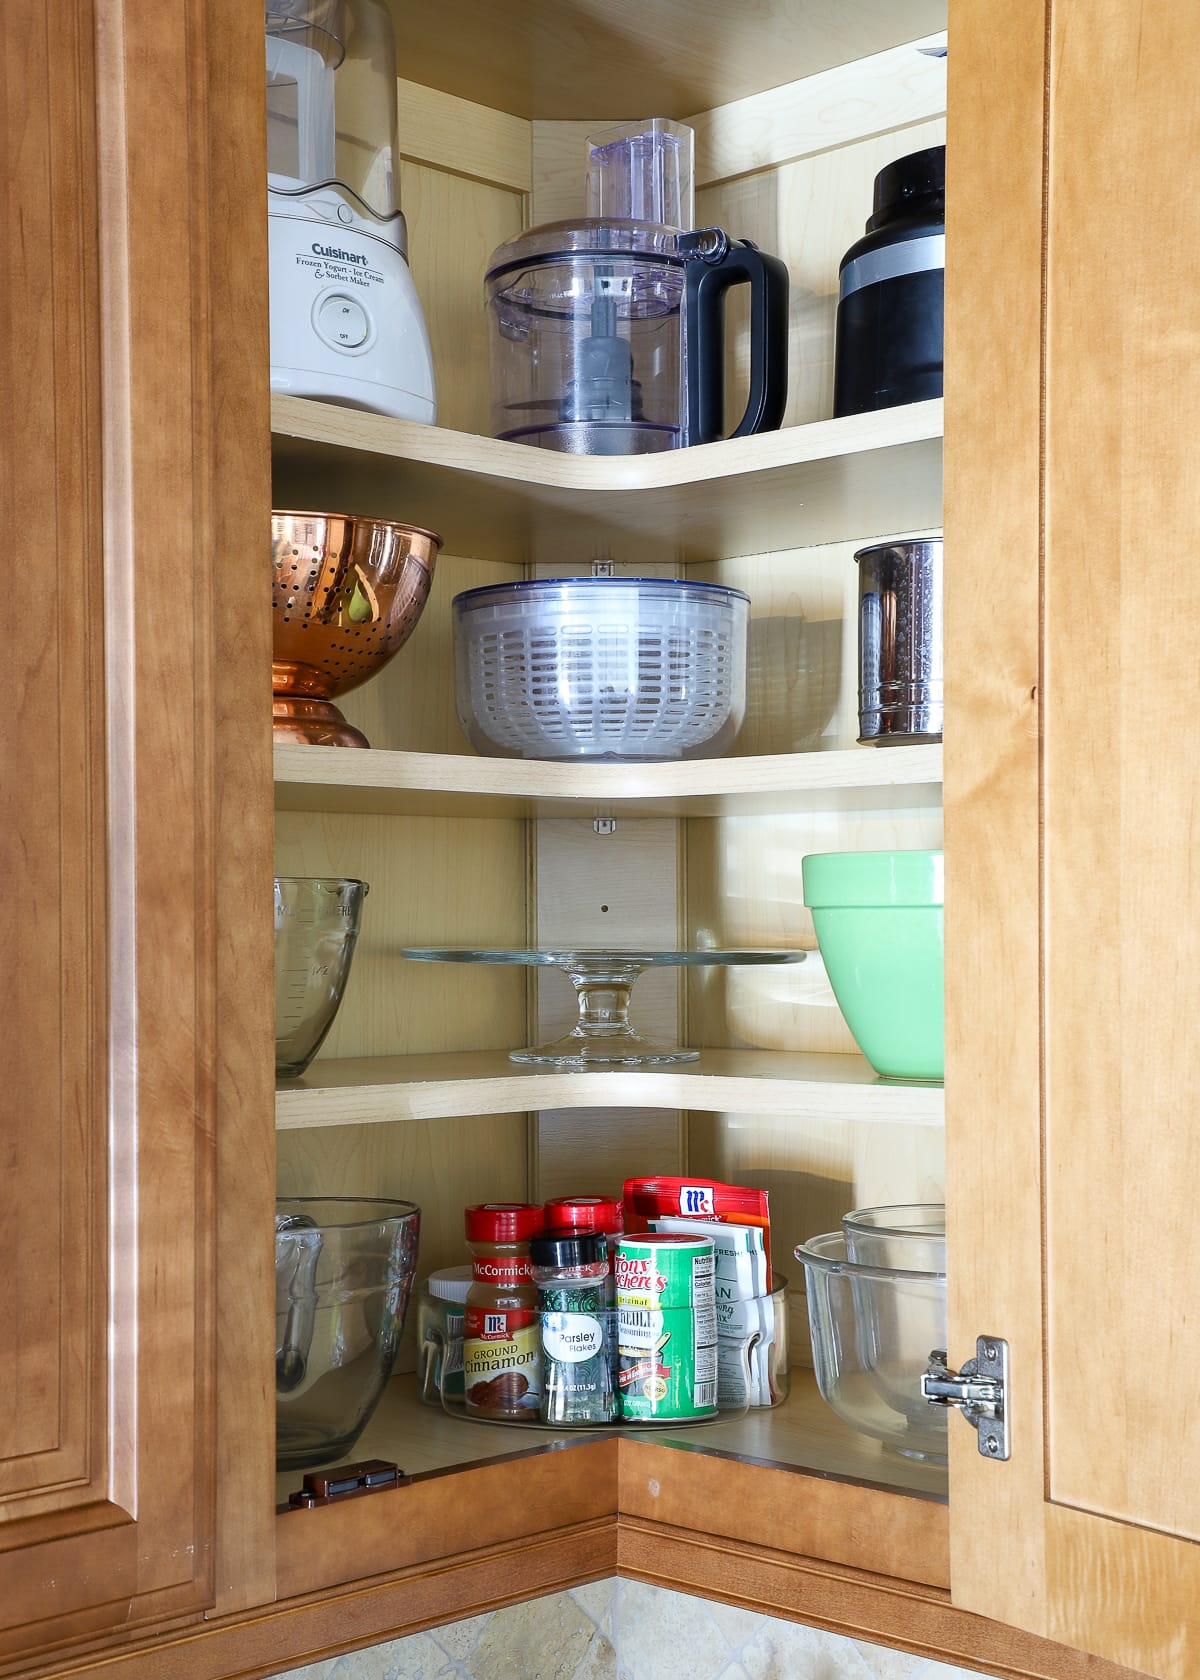 How To Organize Corner Kitchen Cabinets The Homes I Have Made